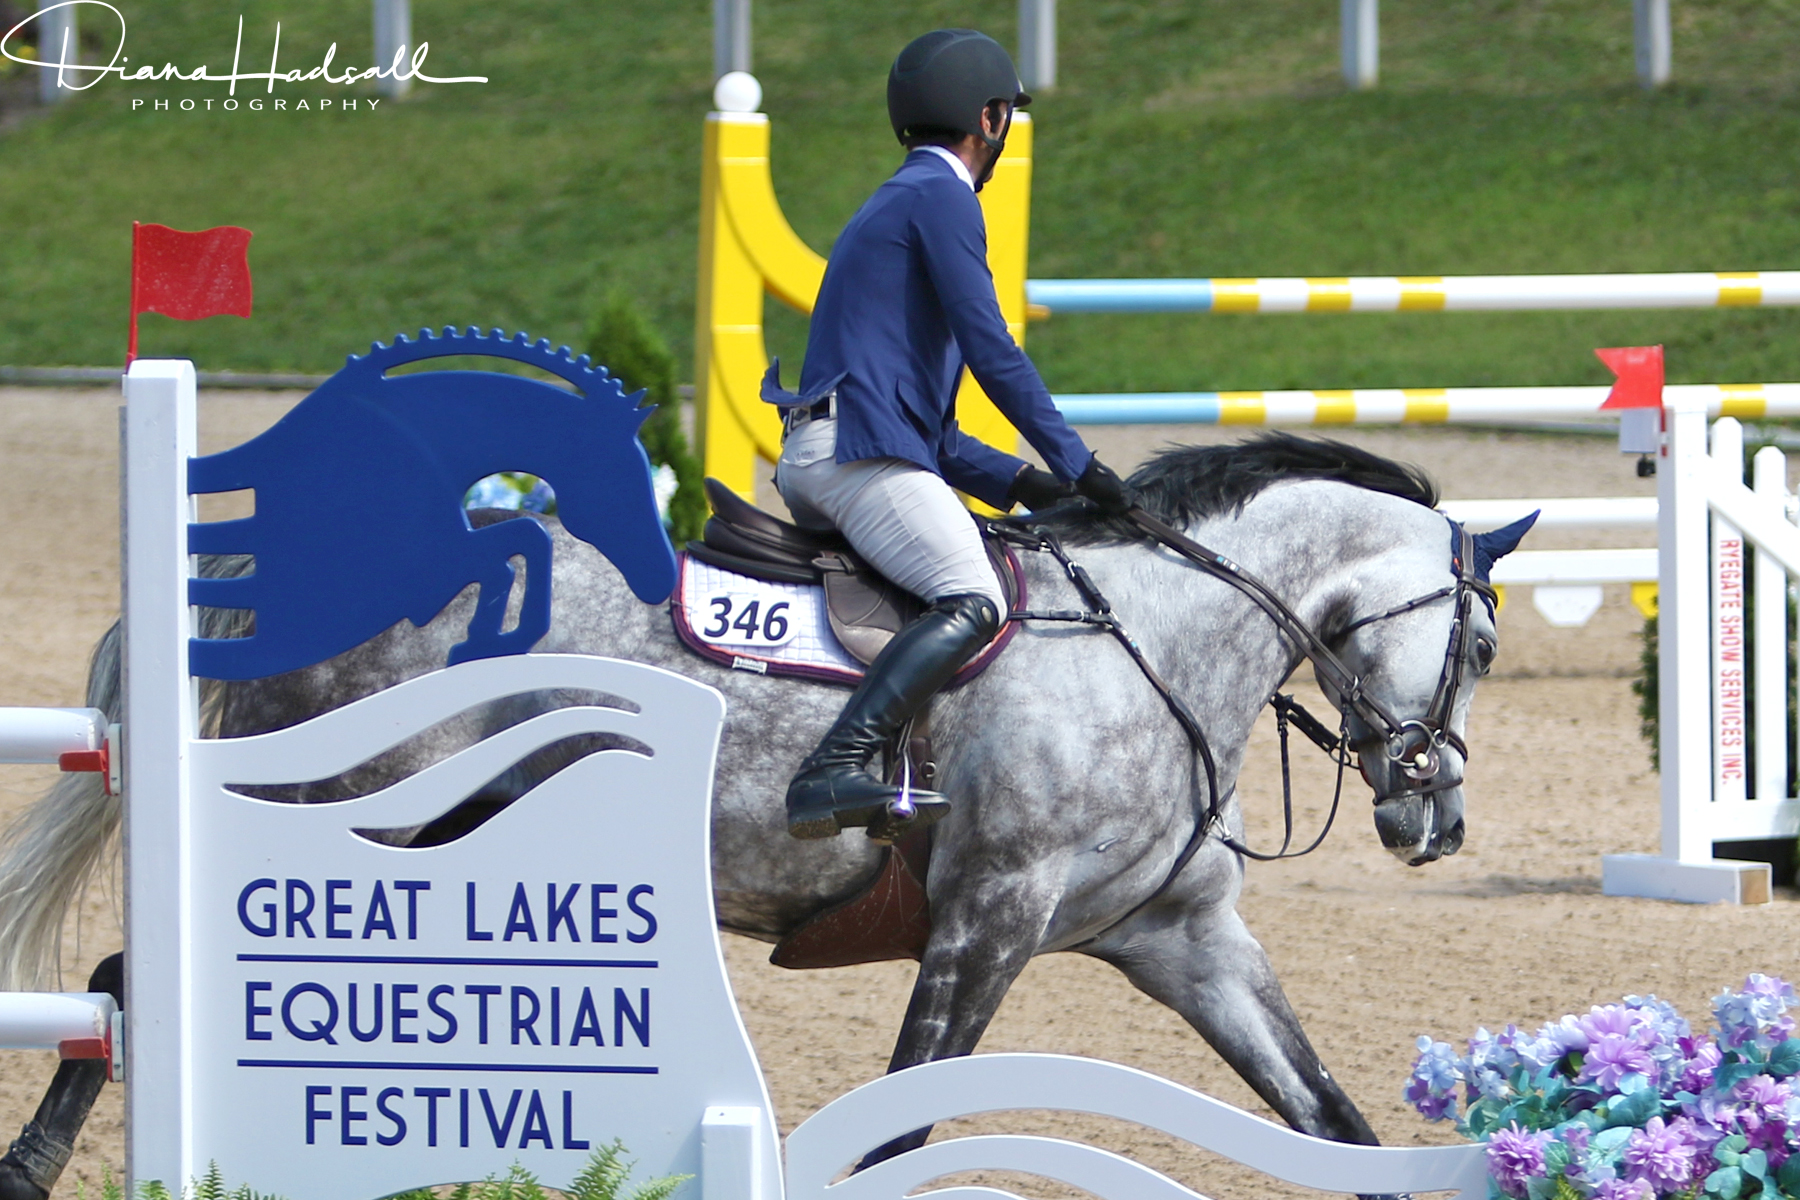 Stallershows was at the Great Lakes Equestrian Festival to pilot the new platform.